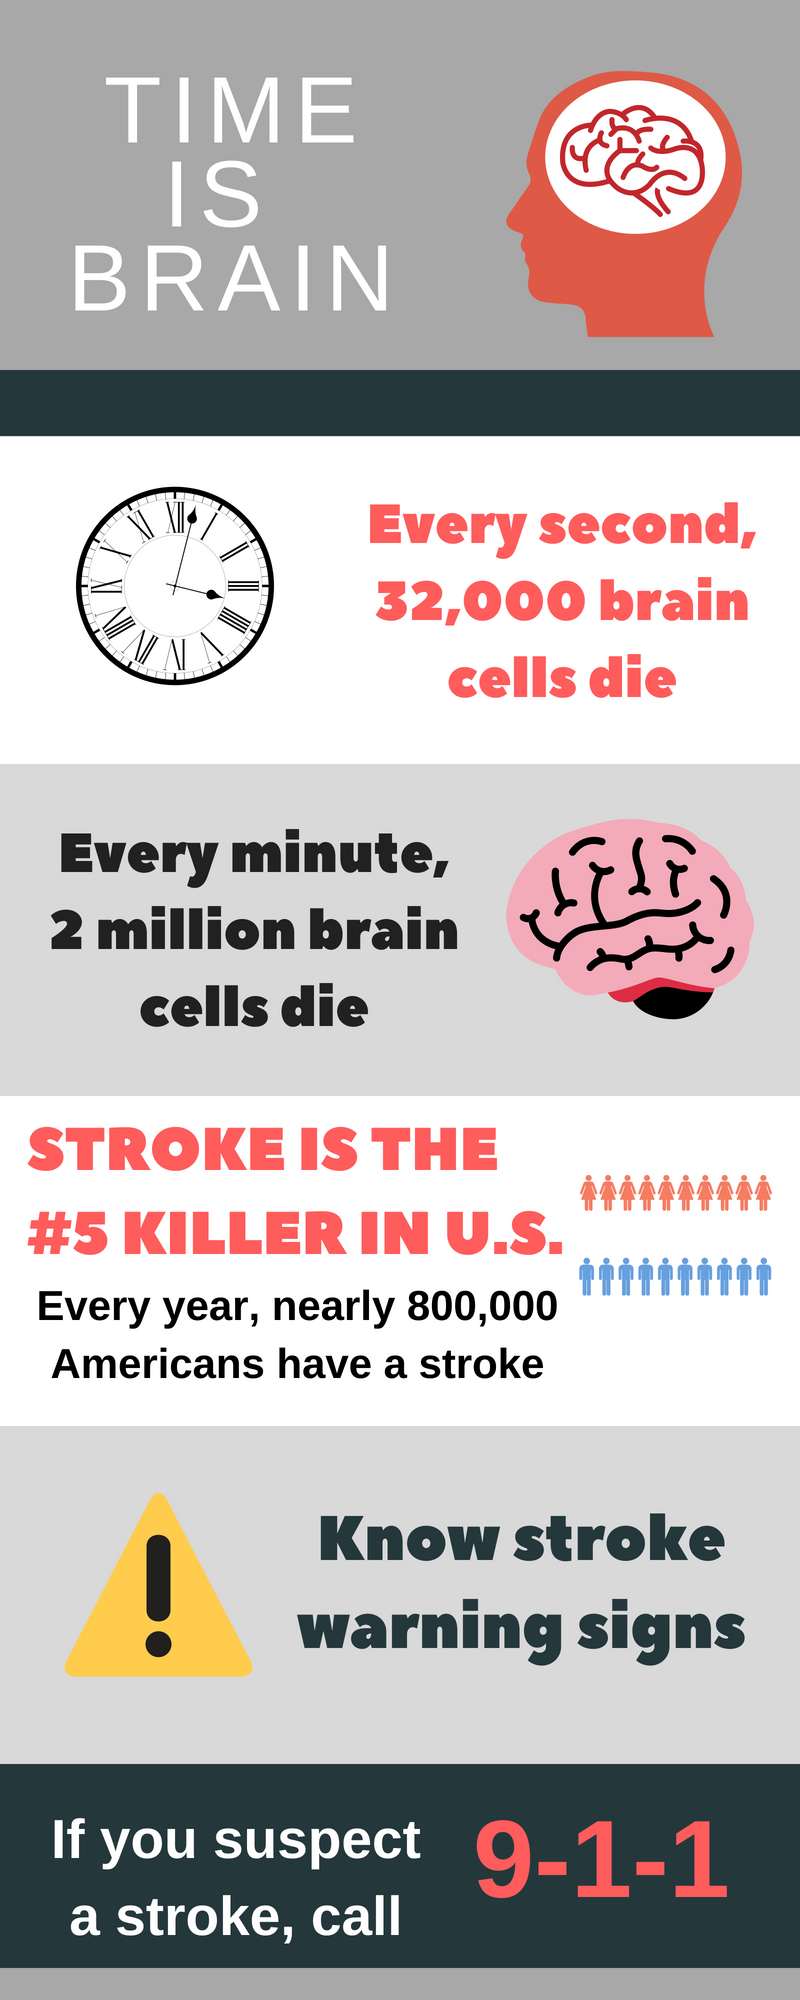 Stroke Infographic: Time is Brain!